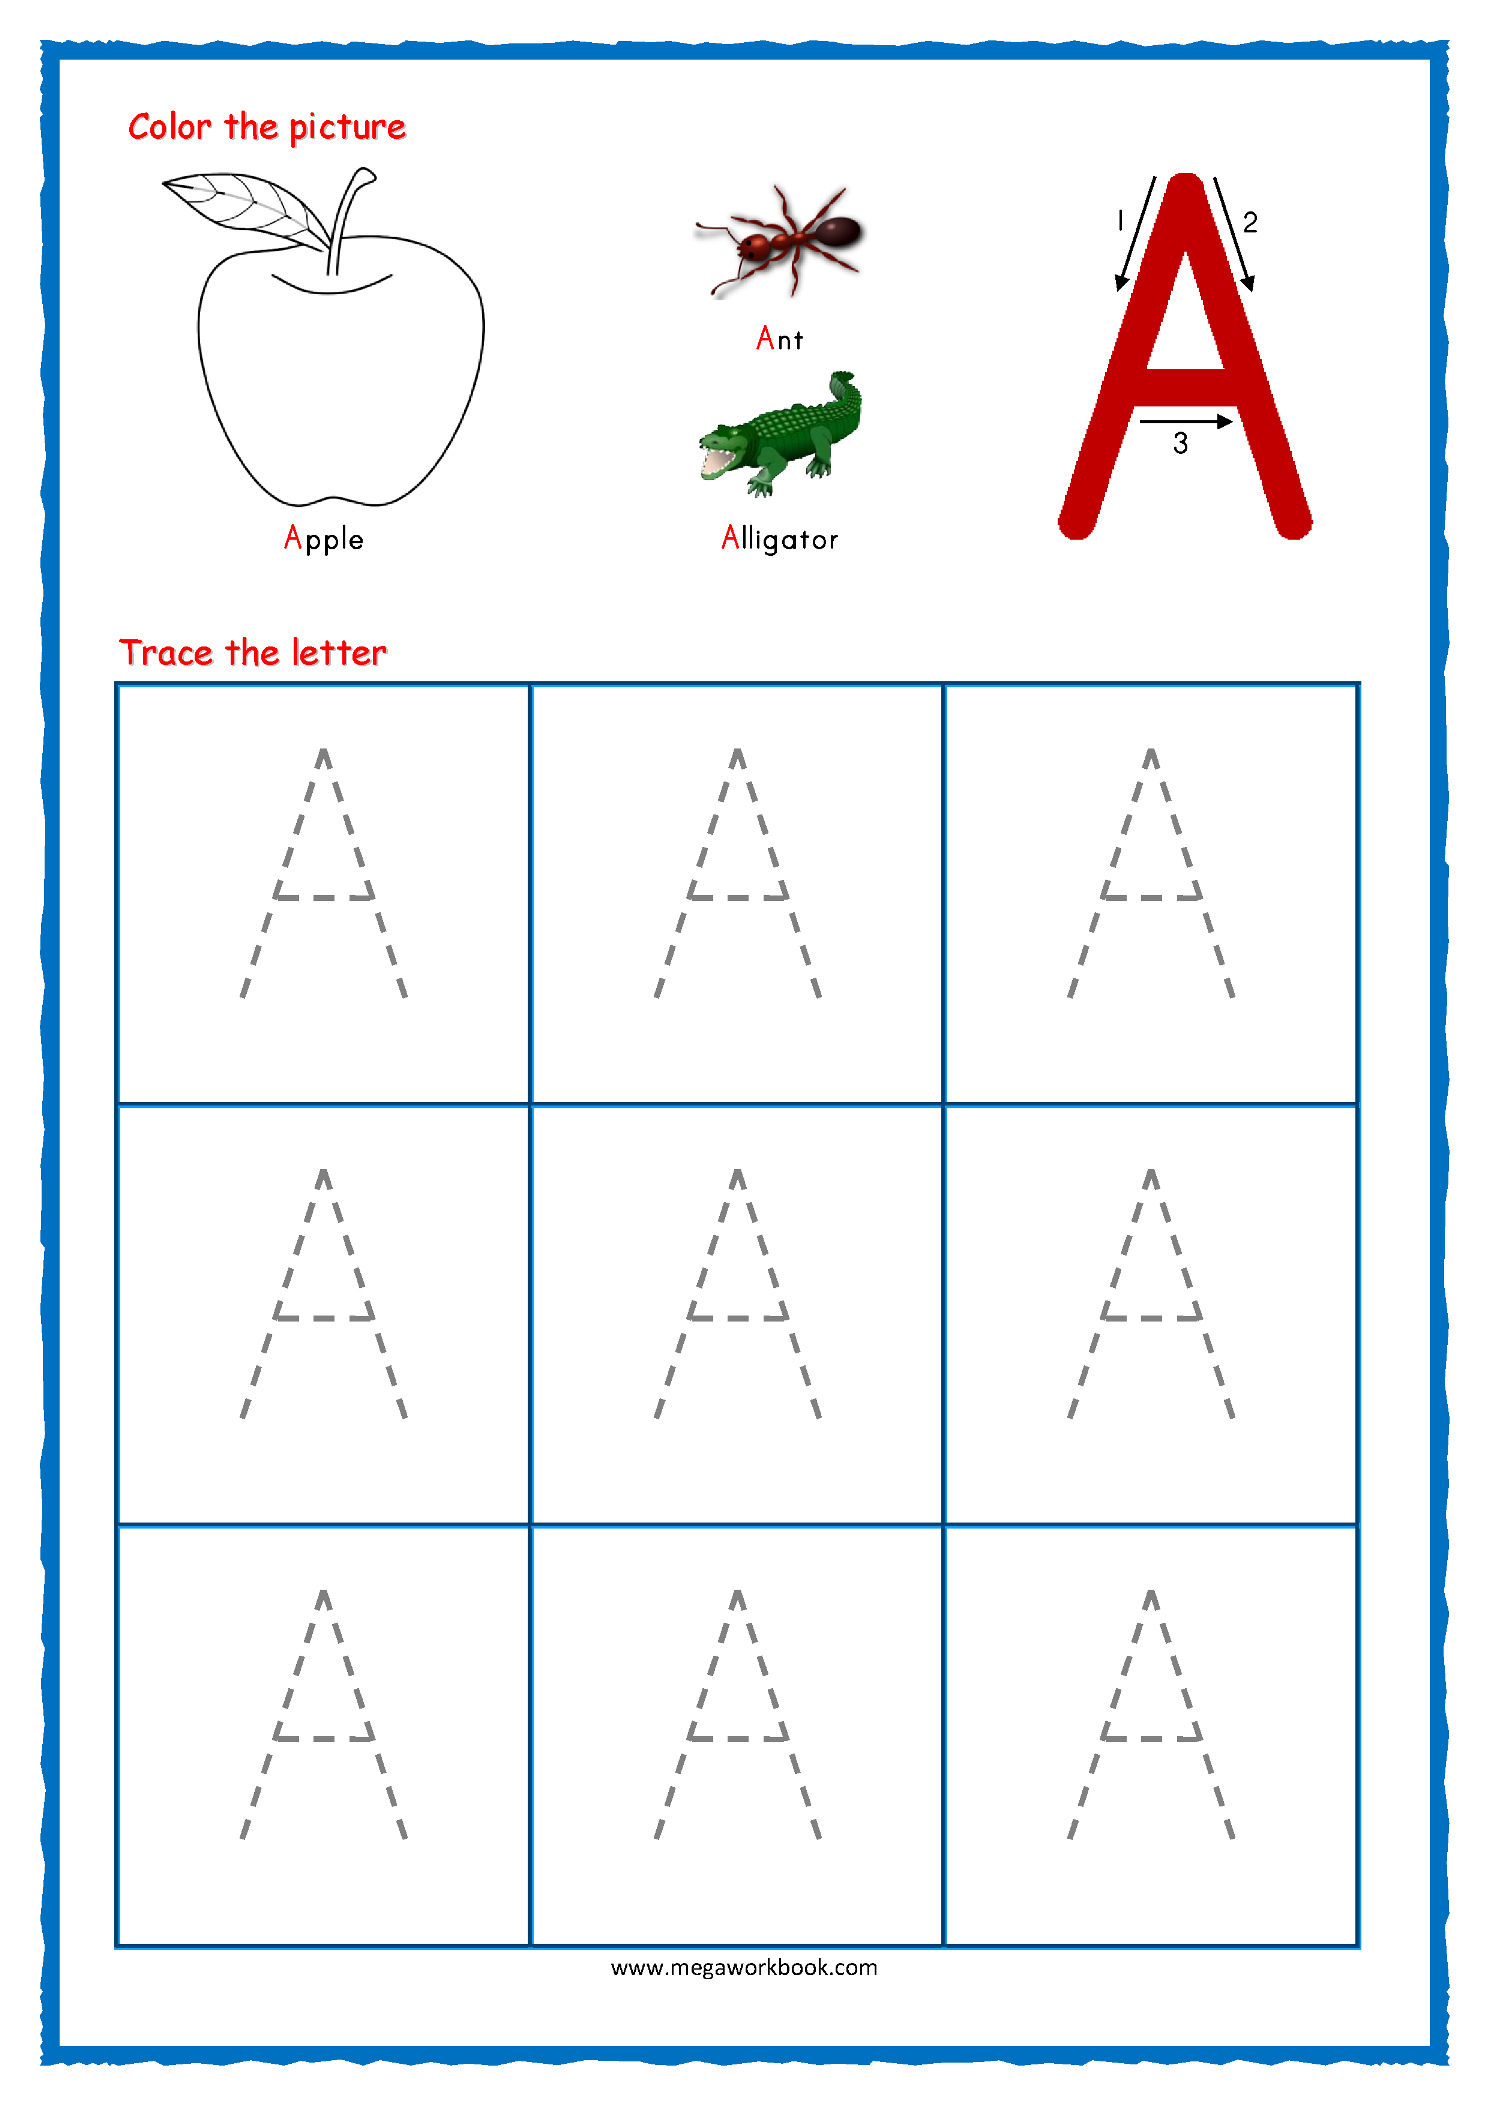 Tracing Letters - Alphabet Tracing - Capital Letters throughout Alphabet Tracing Large